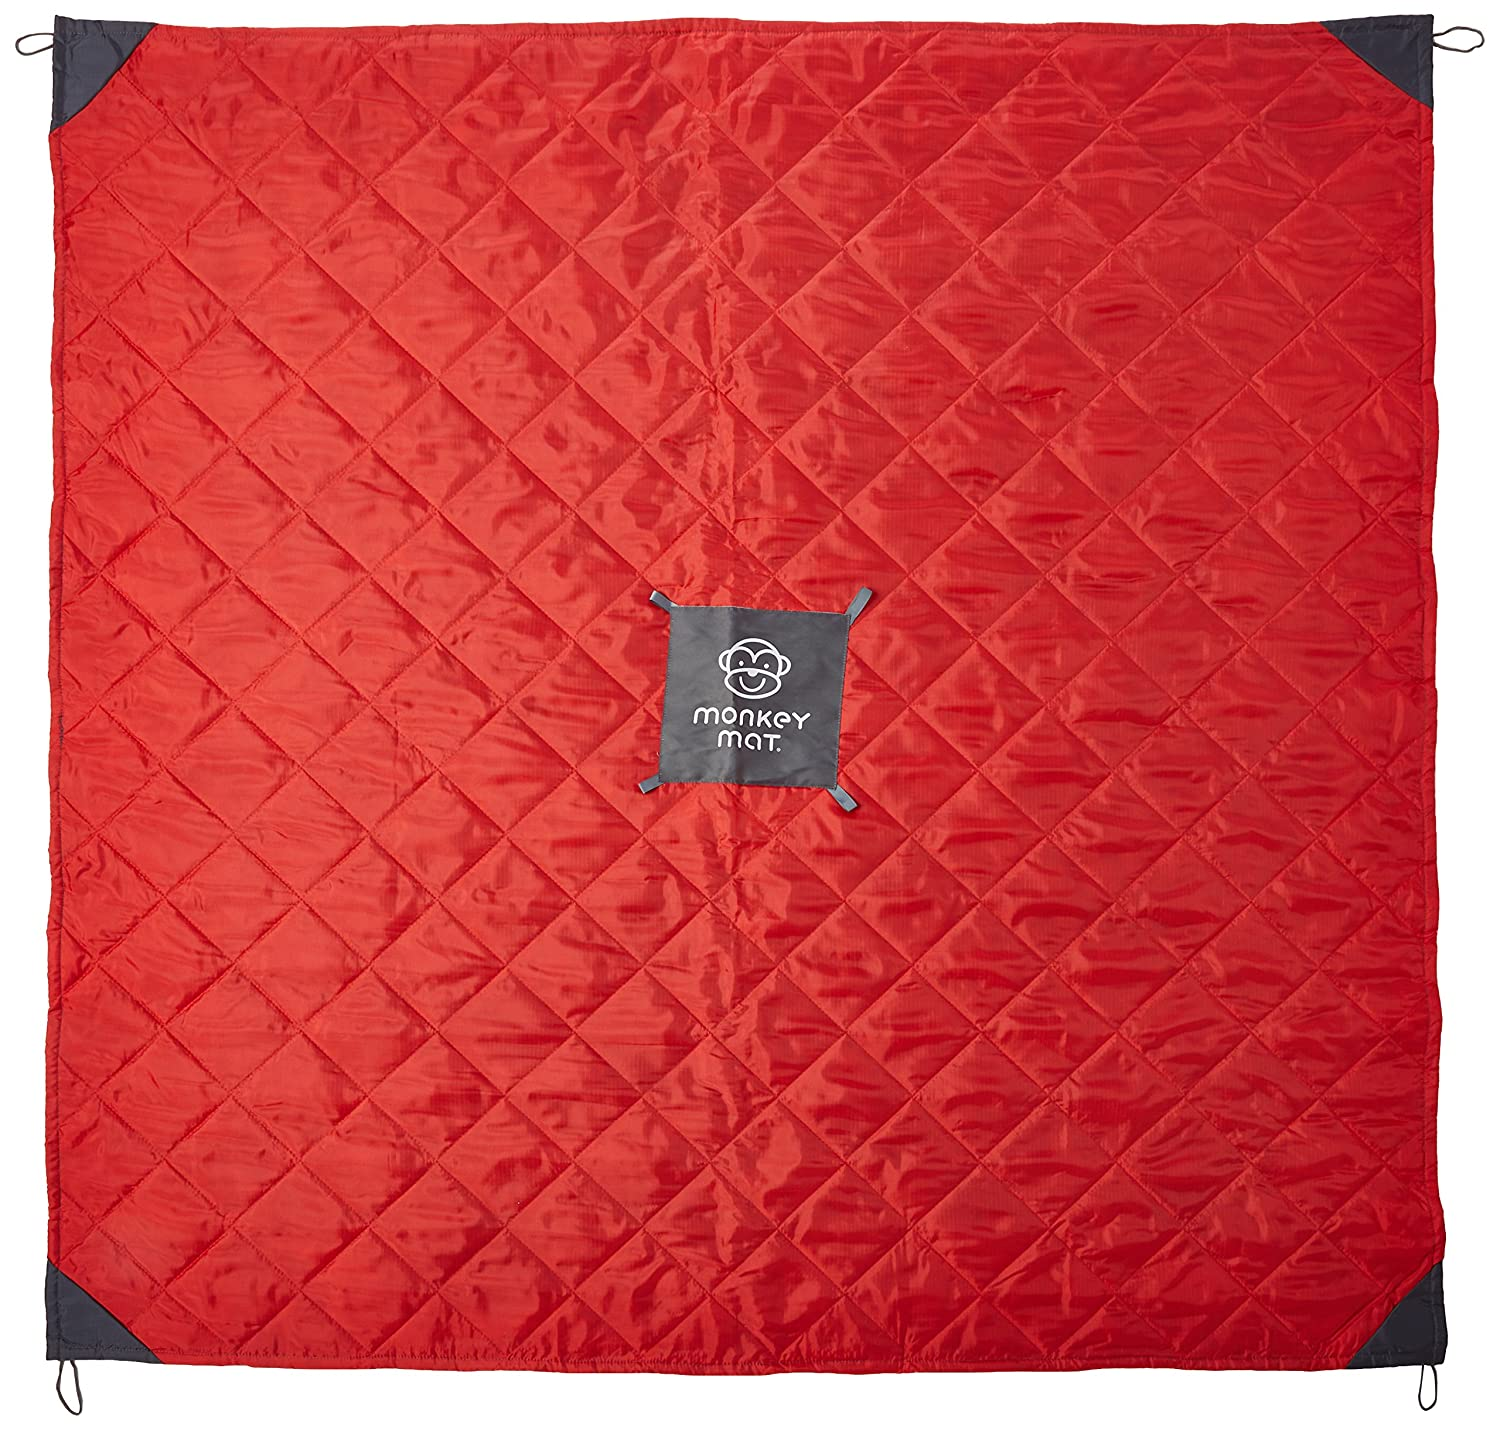 Monkey Mat - Quilted Mat   Lightweight Luxurious Water Repellant Blanket with Corner Weights - 5' x 5' (Gray)